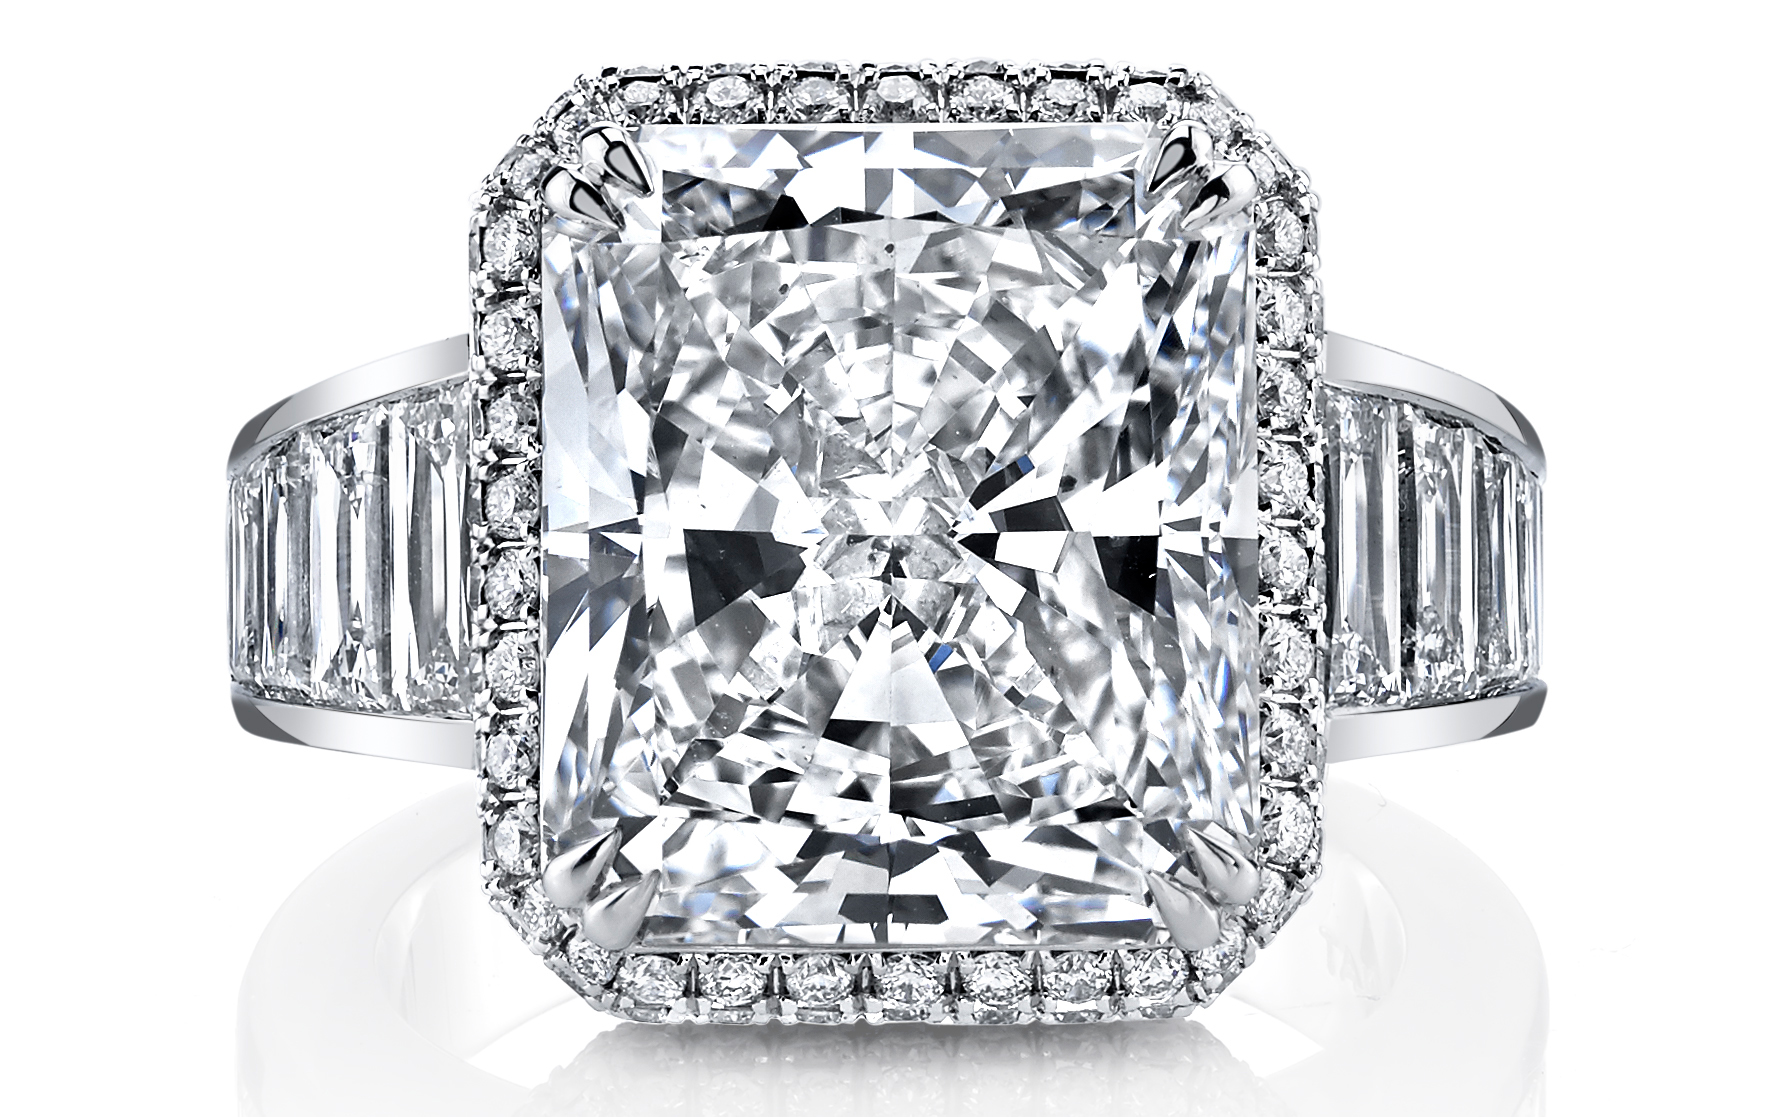 Joshua J 10.43 ct. radiant-cut diamond ring | JCK On Your Market